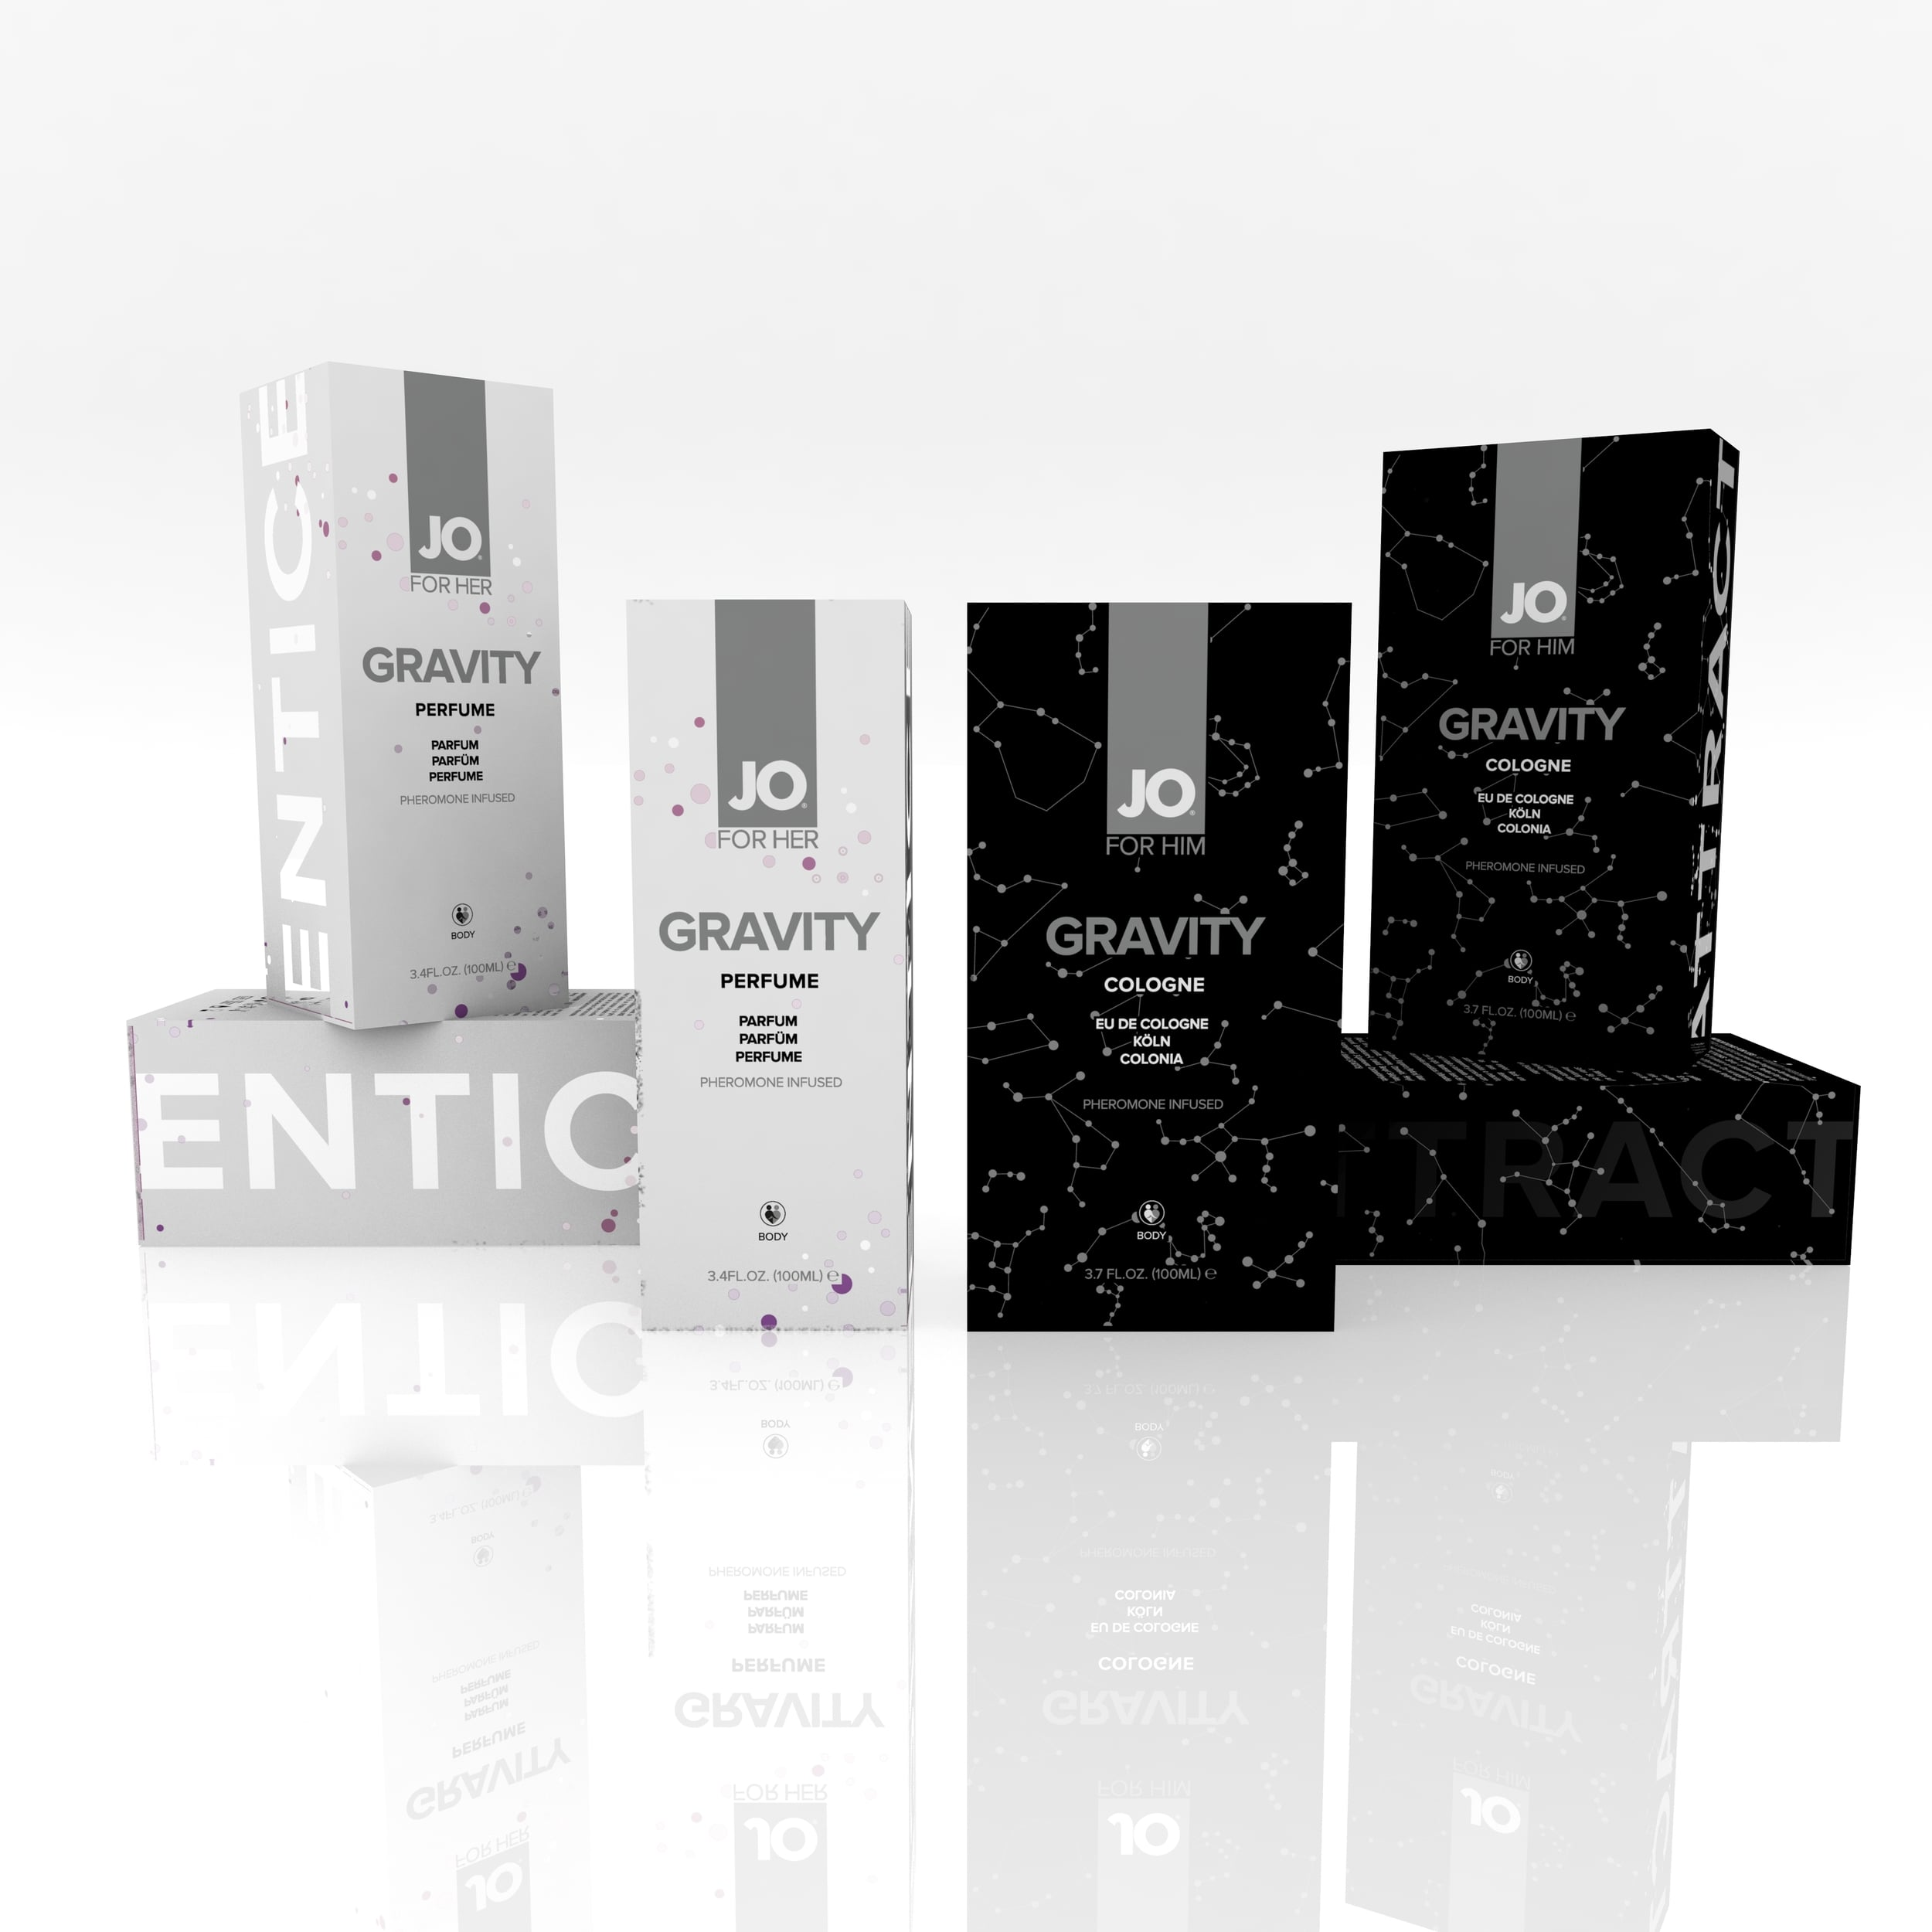 JO Gravity Perfume and Cologne (cluster) (straight on) (bright)200.jpg